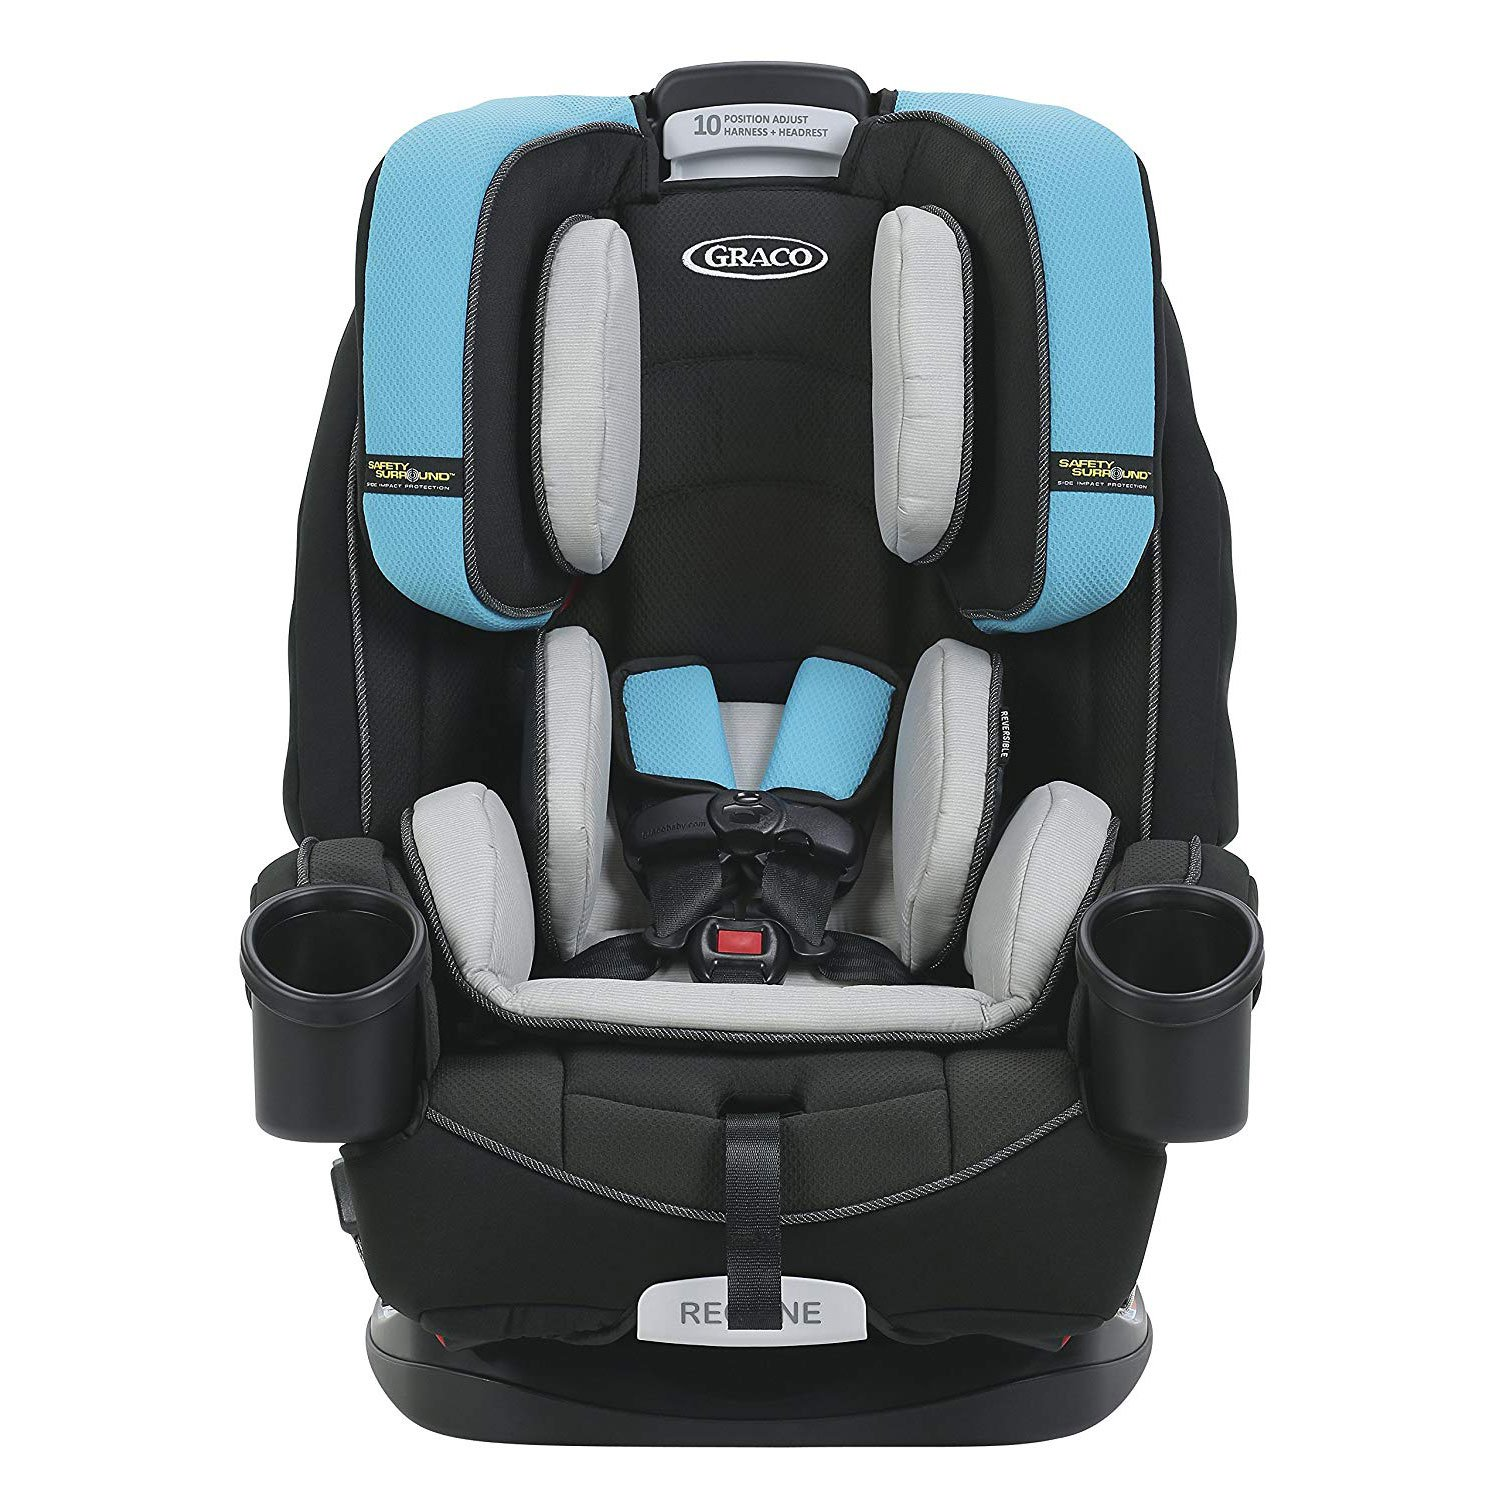 b1326491e104f Graco 4Ever Safety Surround Side Impact 4 in 1 Convertible Child Car Seat